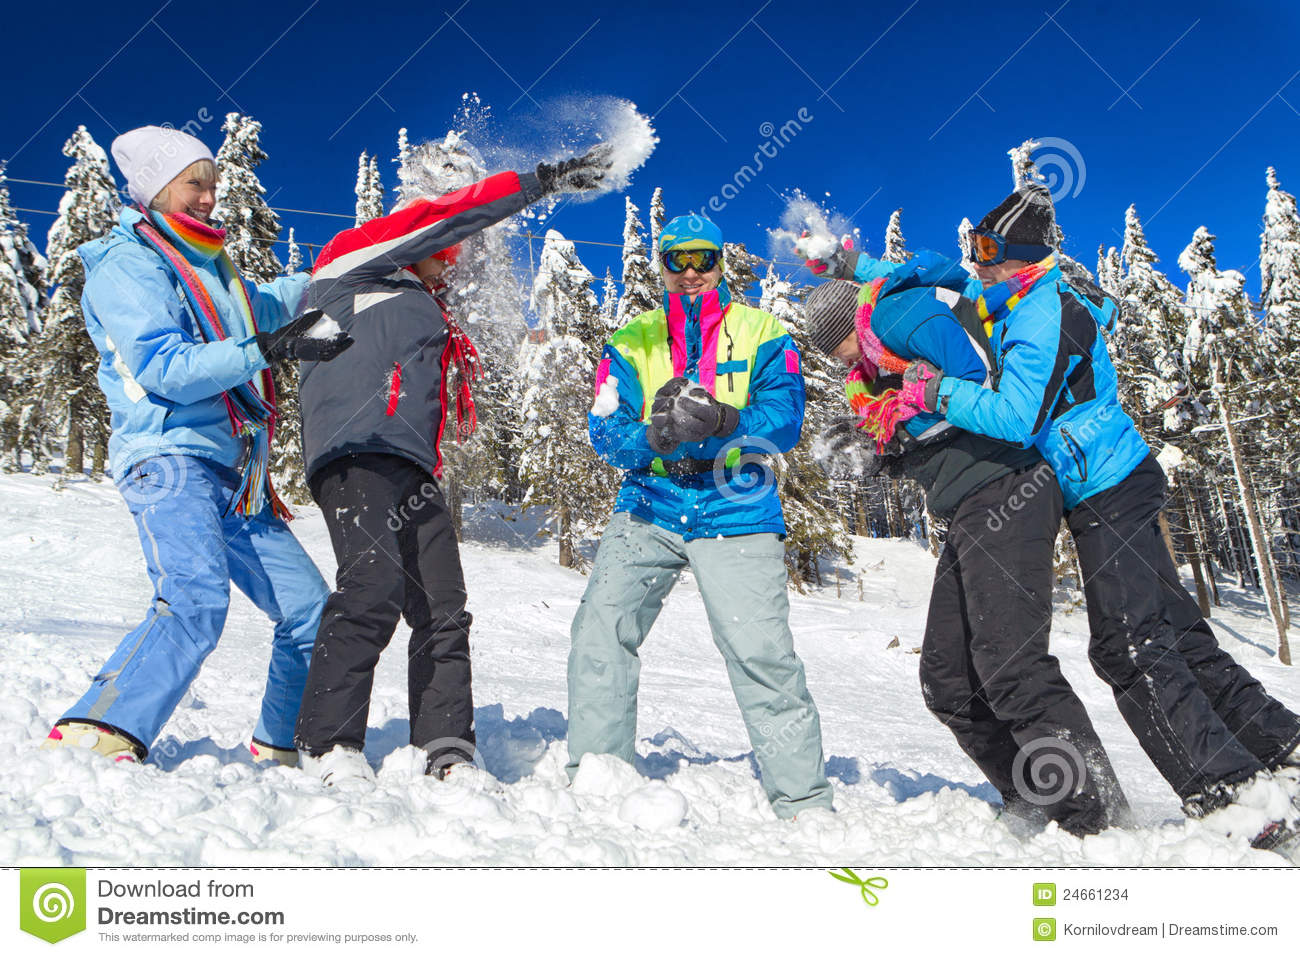 Yuong People Having Snowball Fight In Snow In Winter Background